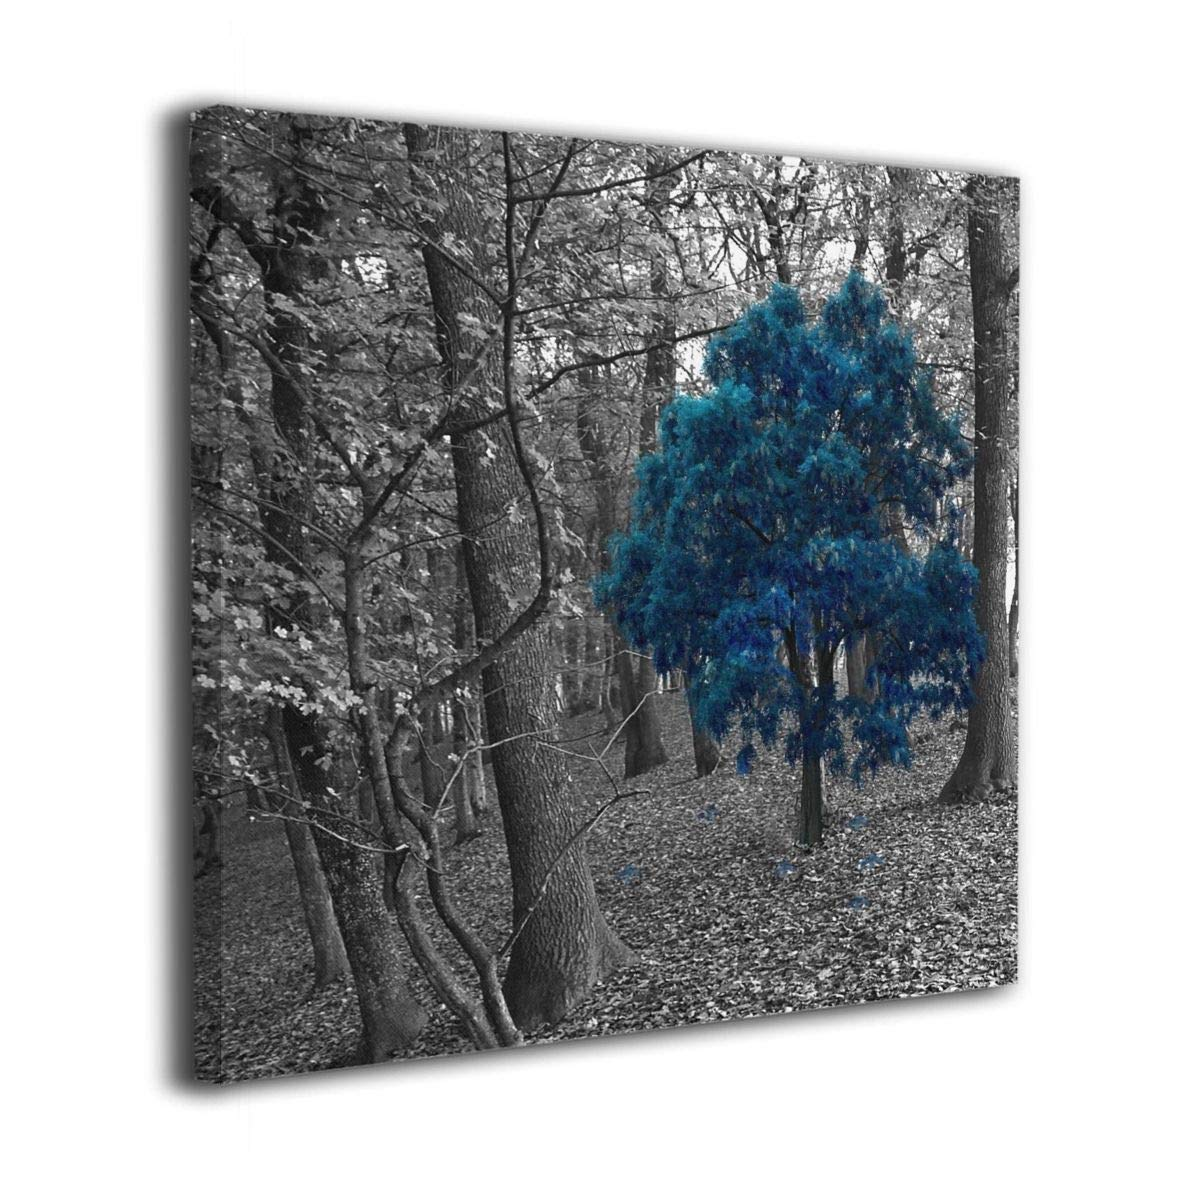 Arnold Glenn Black White Blue Tree Forest Picture Paintings Canvas Wall Art Prints Modern Home Decoration Giclee Artwork-Wood Frame Gallery Stretched